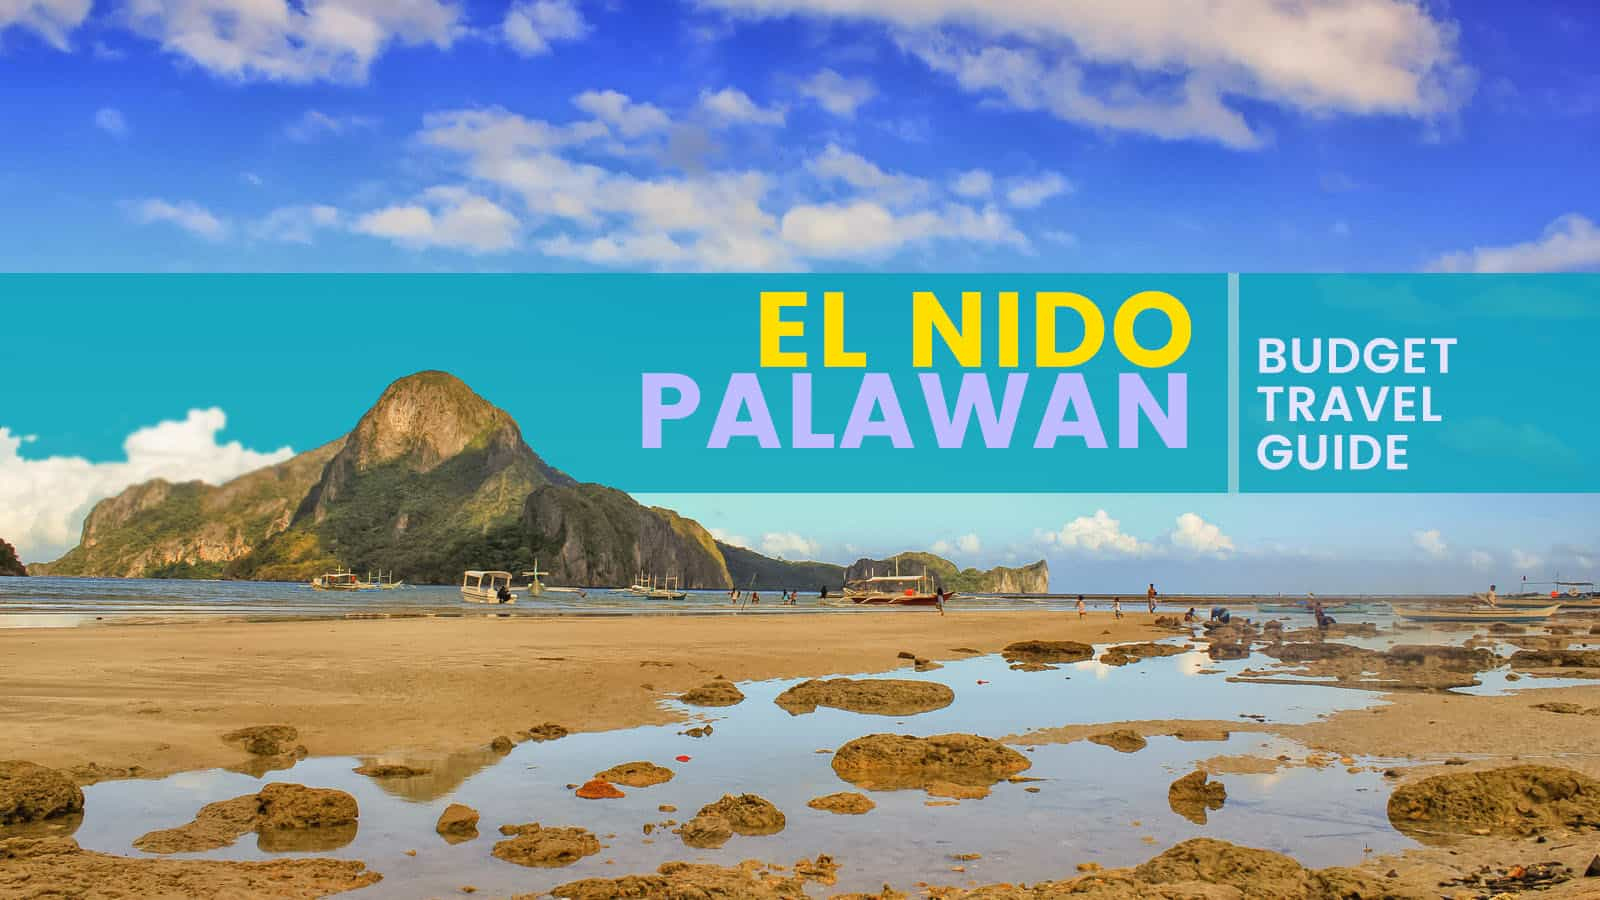 Updated coron palawan budget travel guide itinerary the poor el nido palawan budget travel guide solutioingenieria Gallery